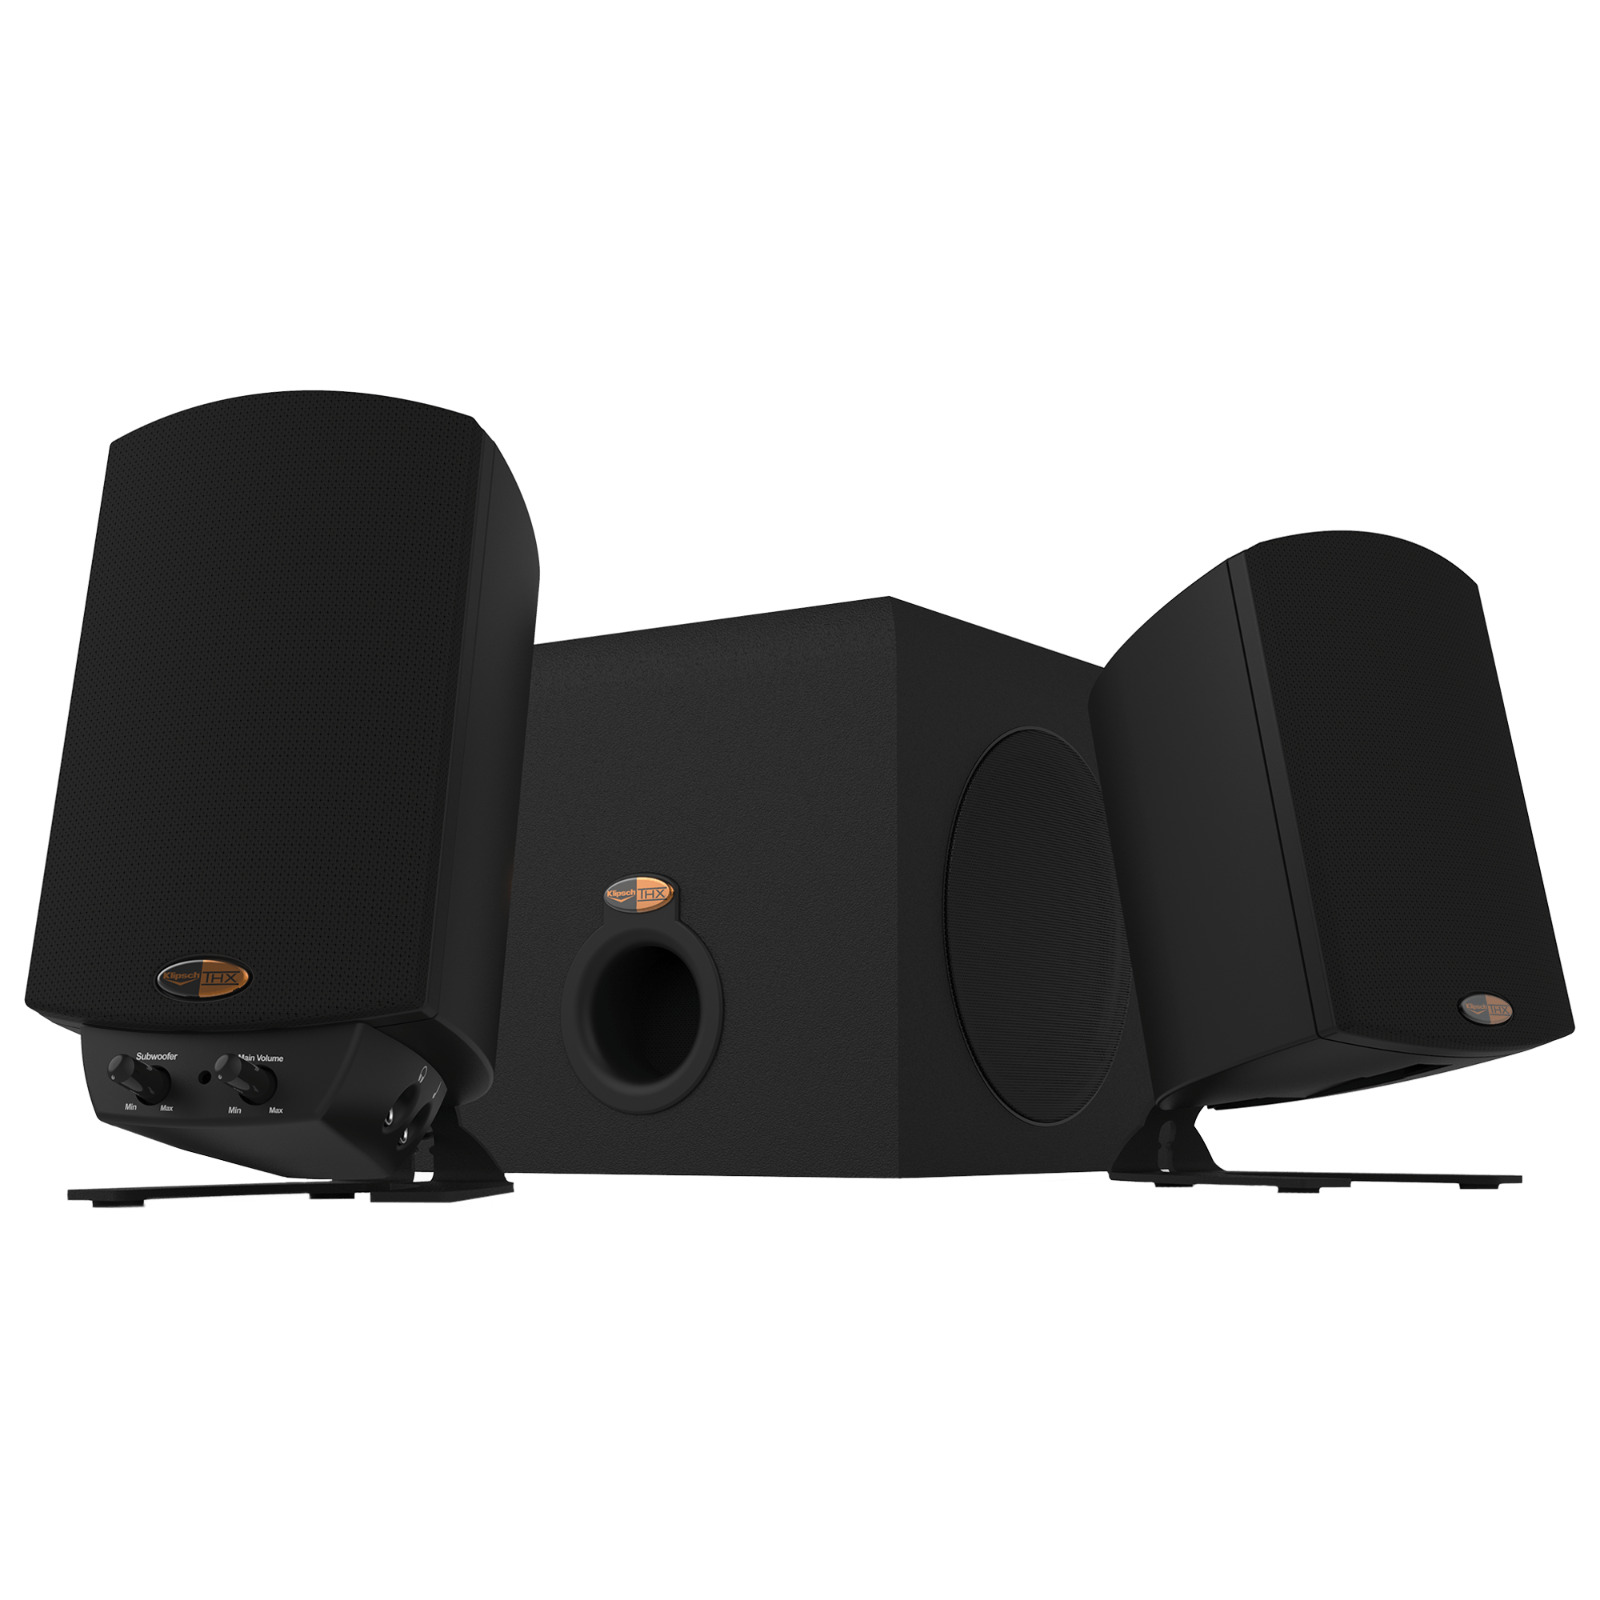 Klipsch ProMedia 2.1 THX Certified Computer Speaker System (Black). Buy it now for 54.99